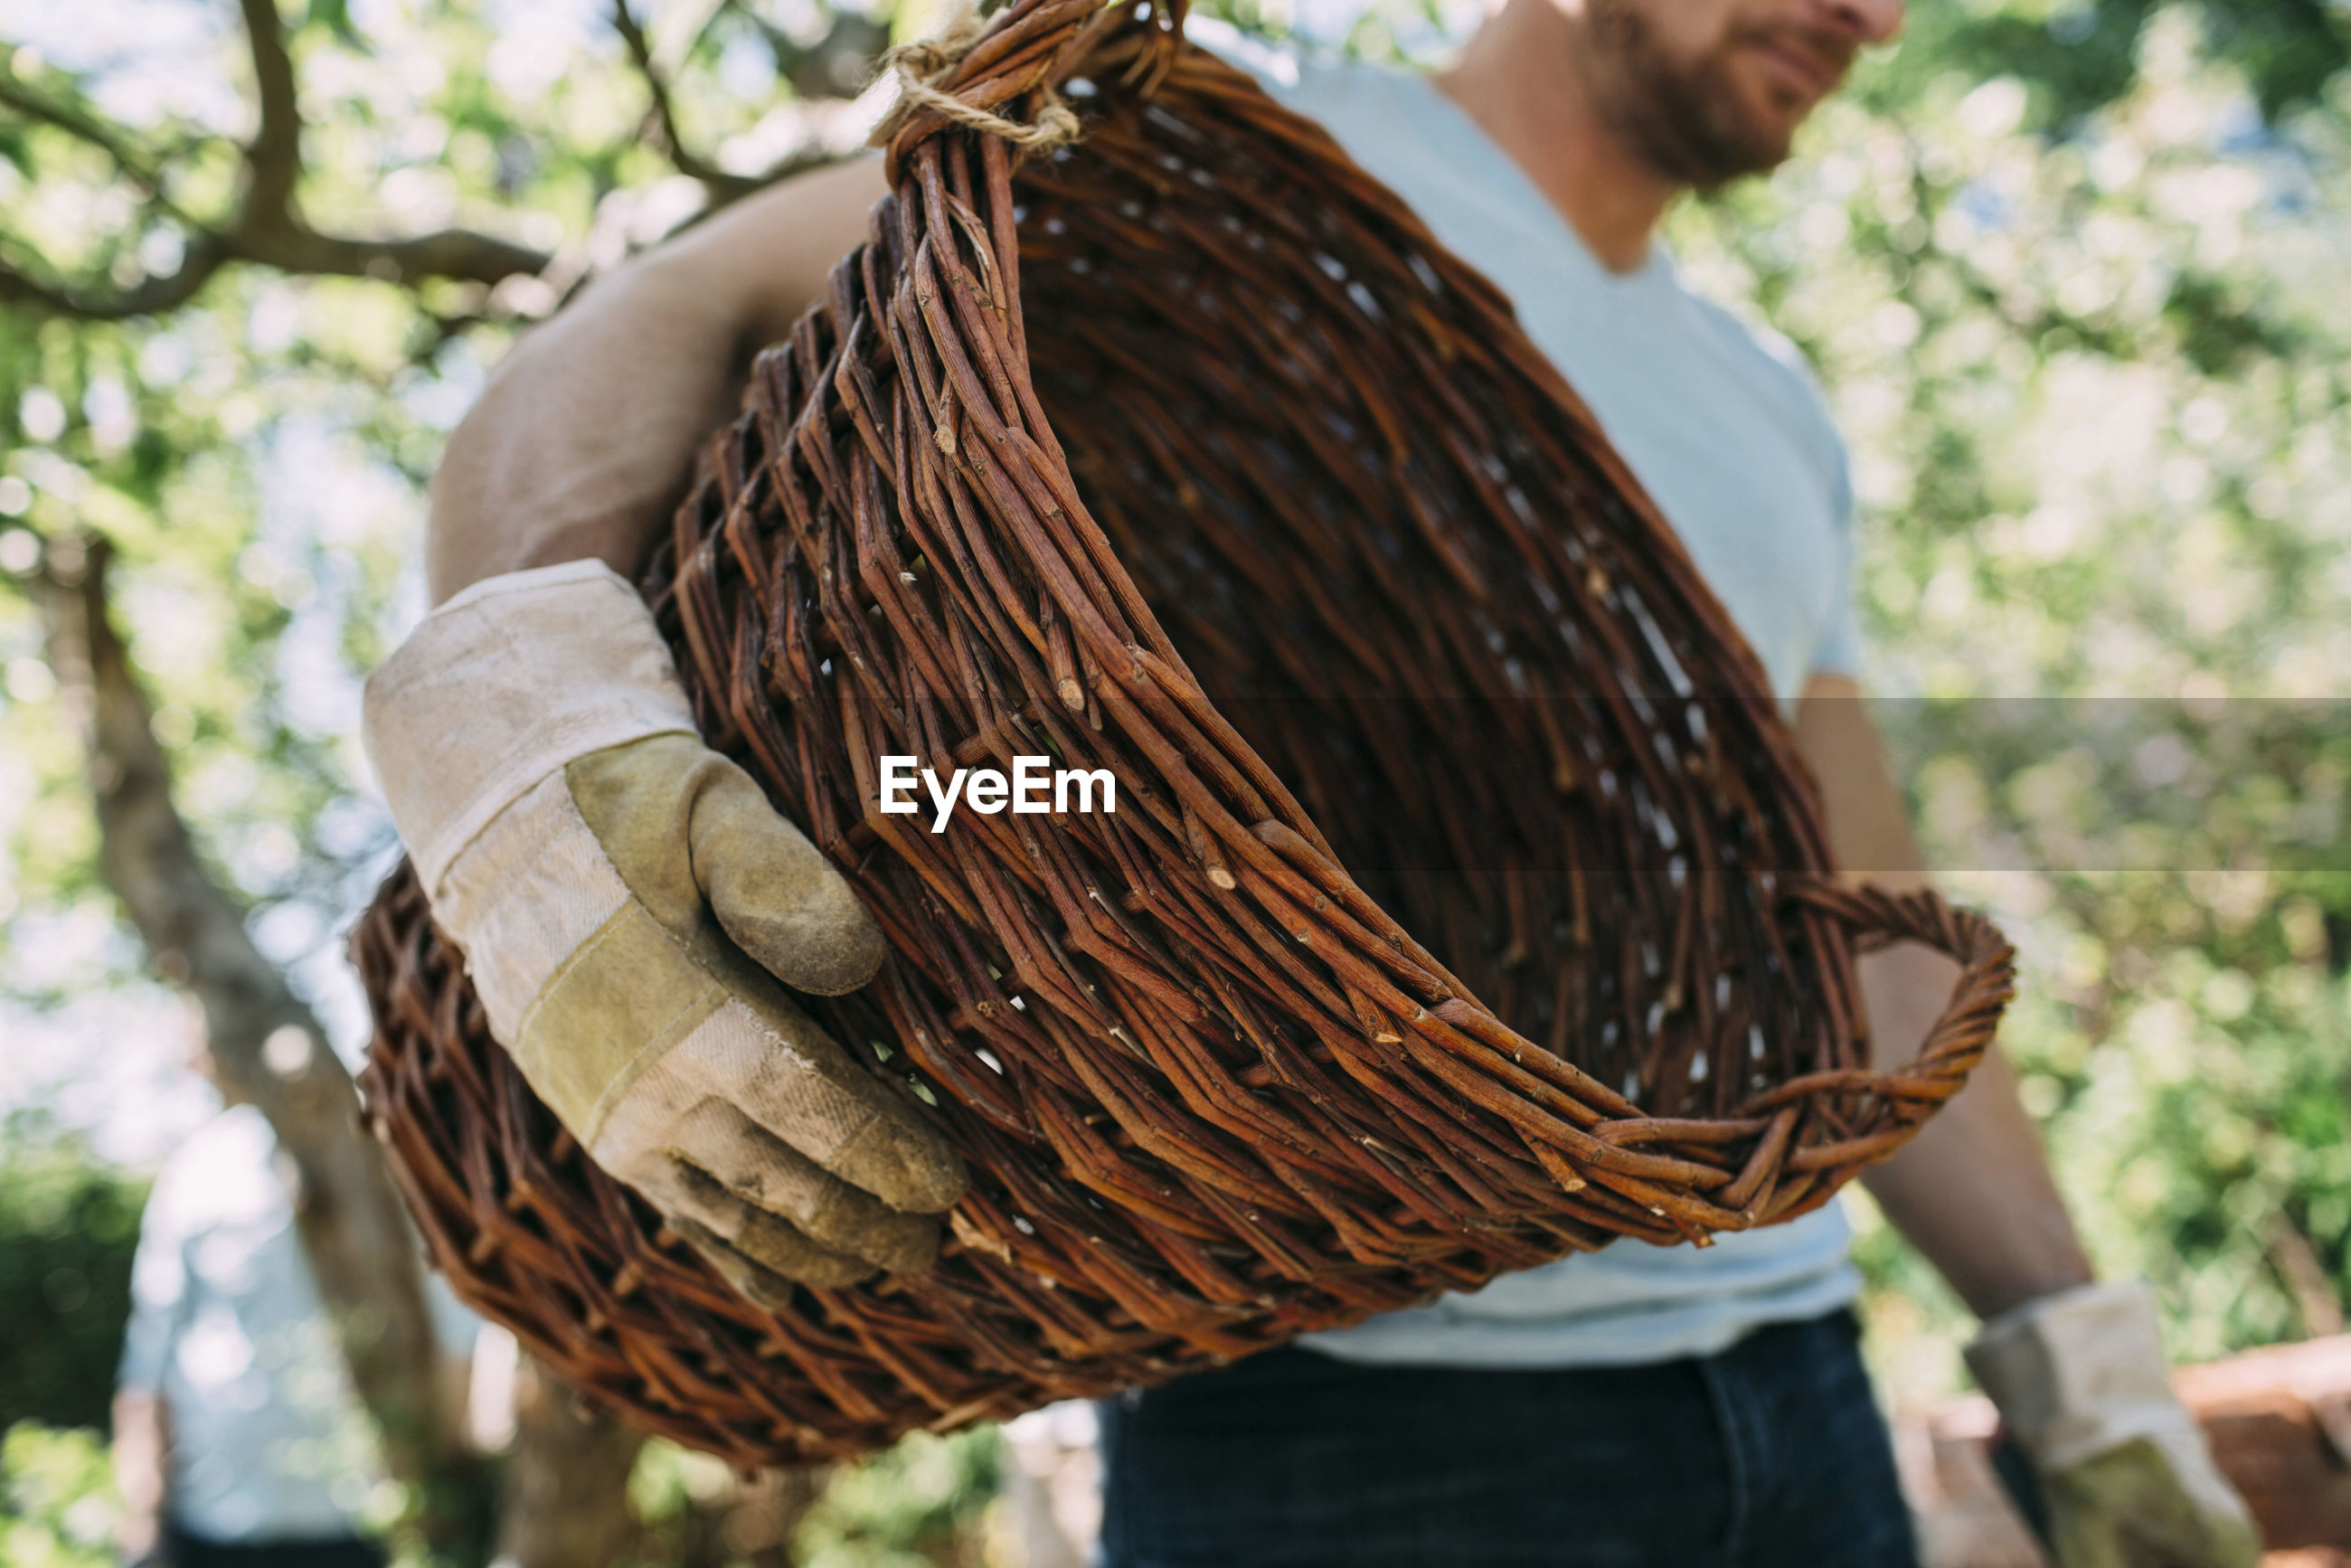 CLOSE-UP OF MAN HOLDING WICKER BASKET